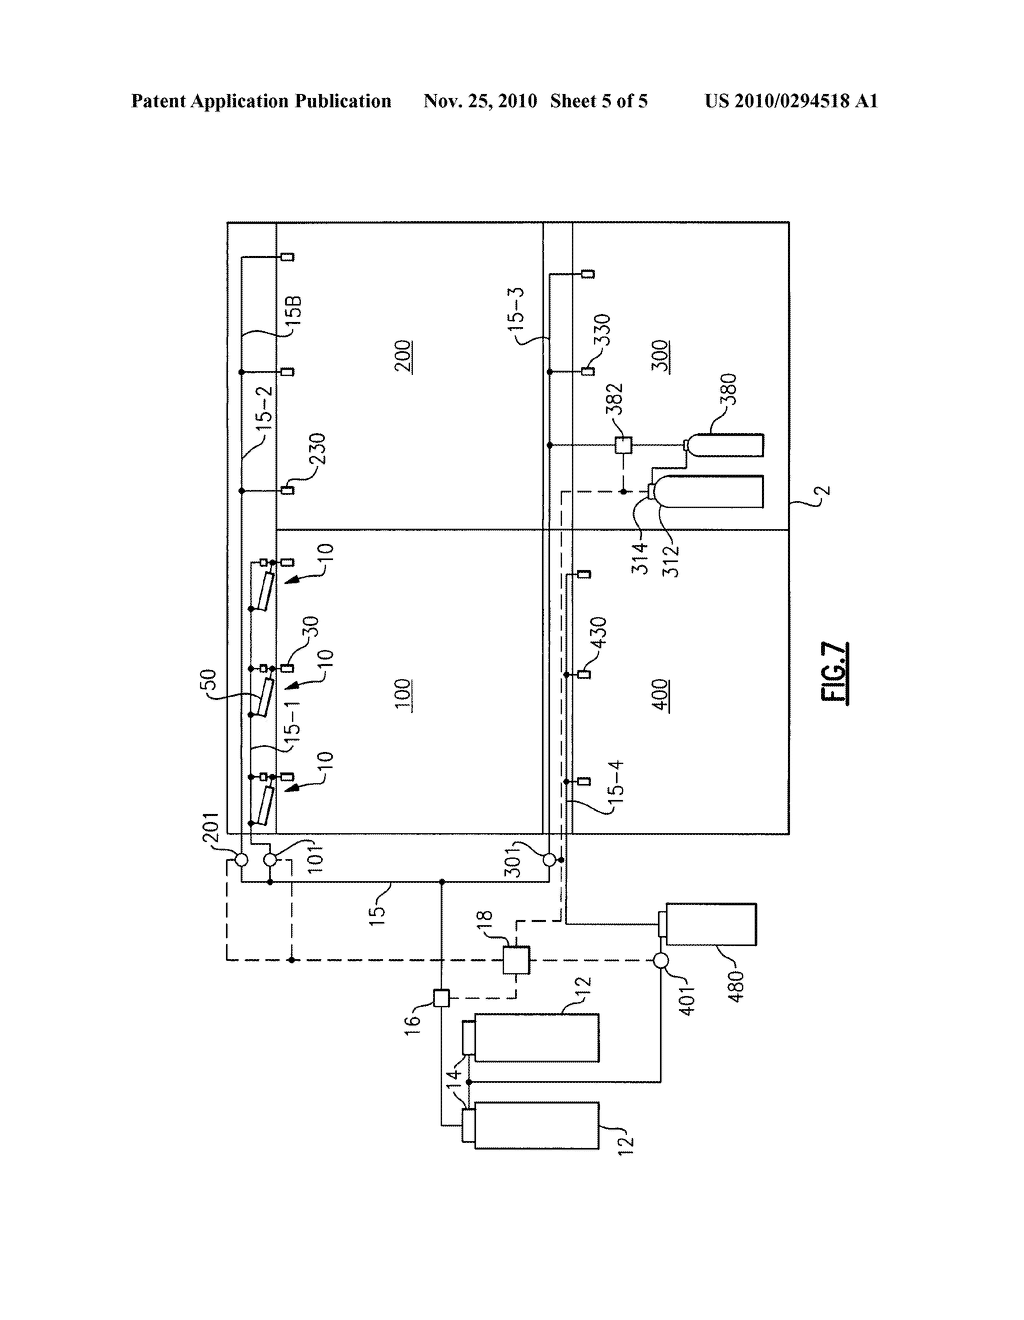 Hybrid Inert Gas Fire Suppression System Diagram Schematic And Firep Wiring Image 06